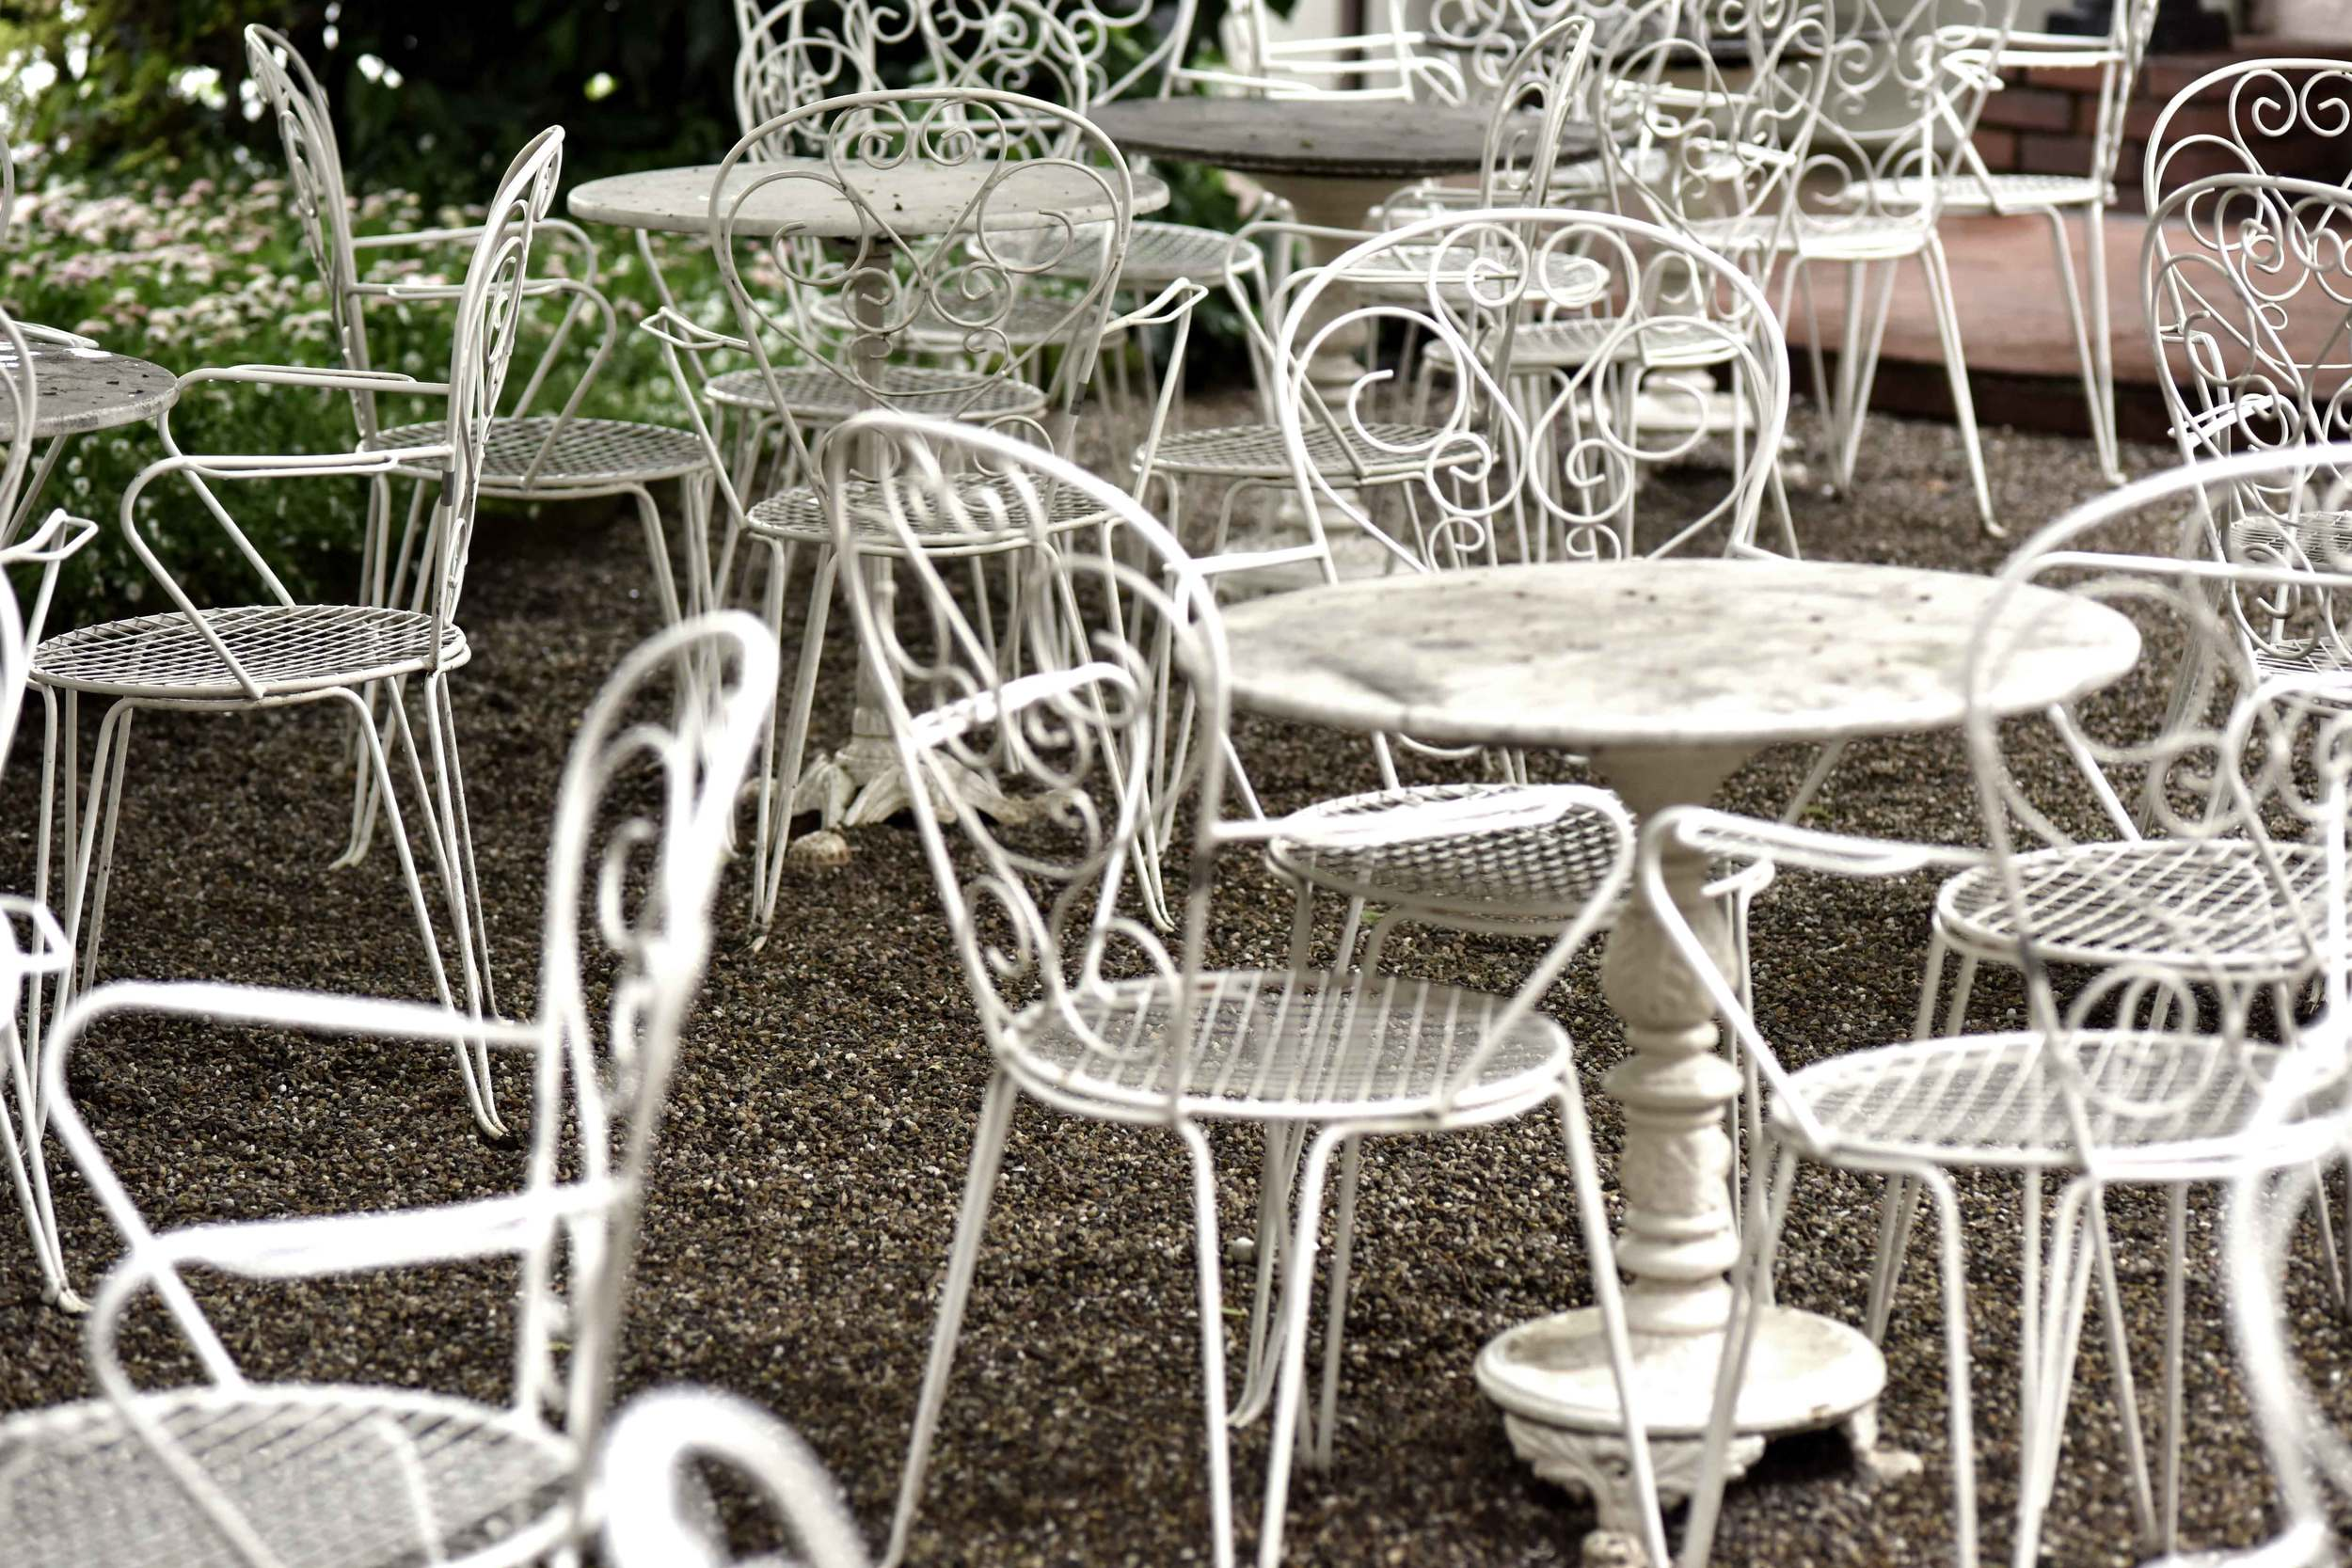 French style open air cafe, outdoor seating at Cafe König, Baden Baden, Germany. Image©sourcingstyle.com